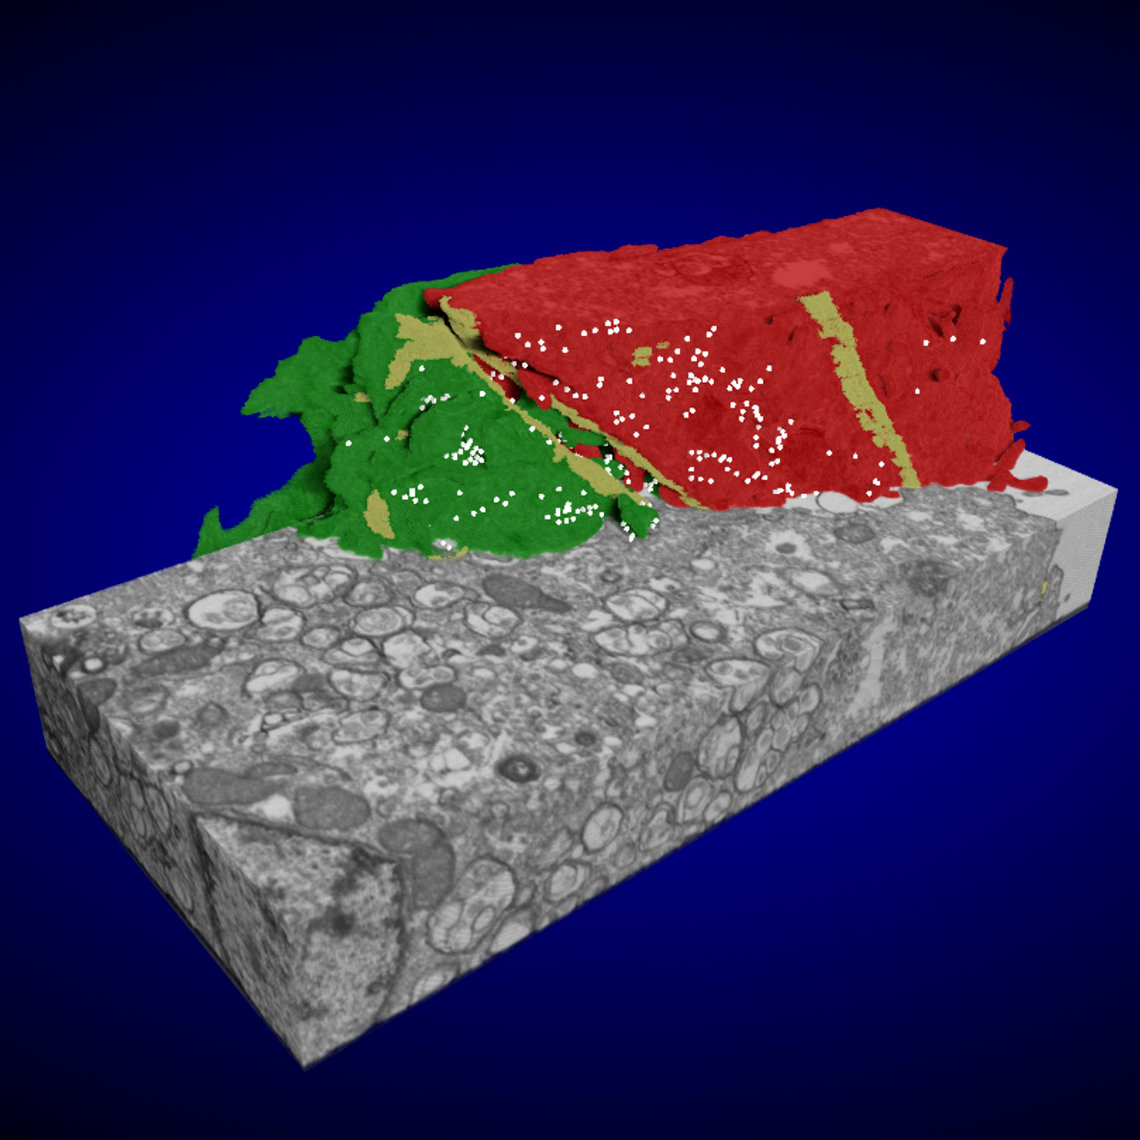 The image shows a gray rectangle with a red and green shape set on a blue background